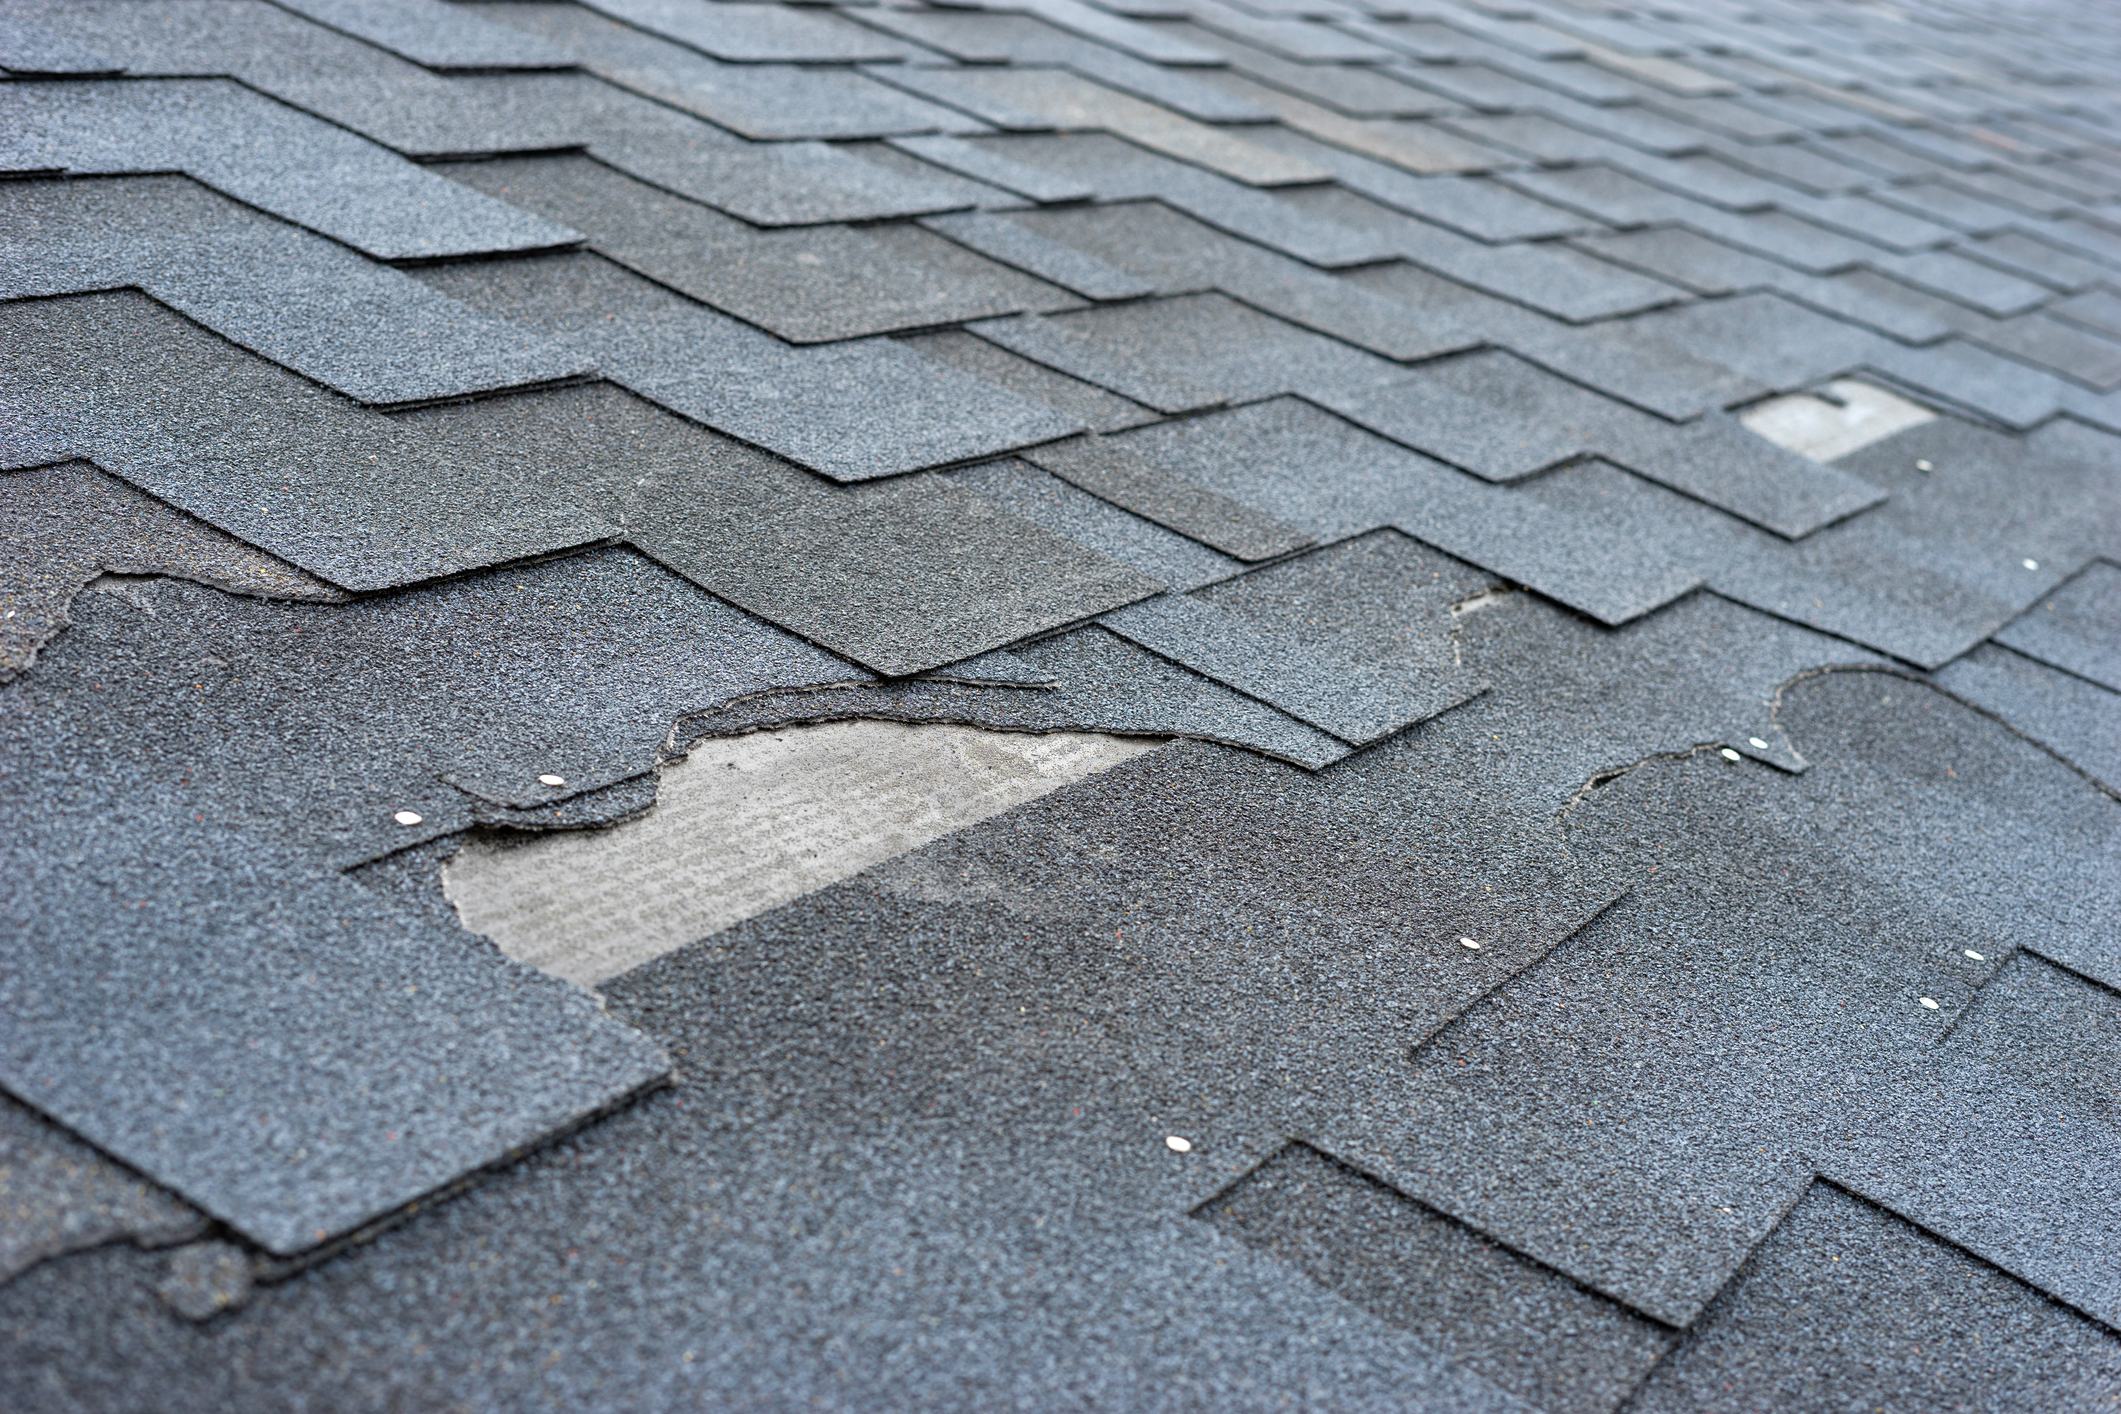 Сlose Up View Of Asphalt Shingles Roof Damage That Needs Repair